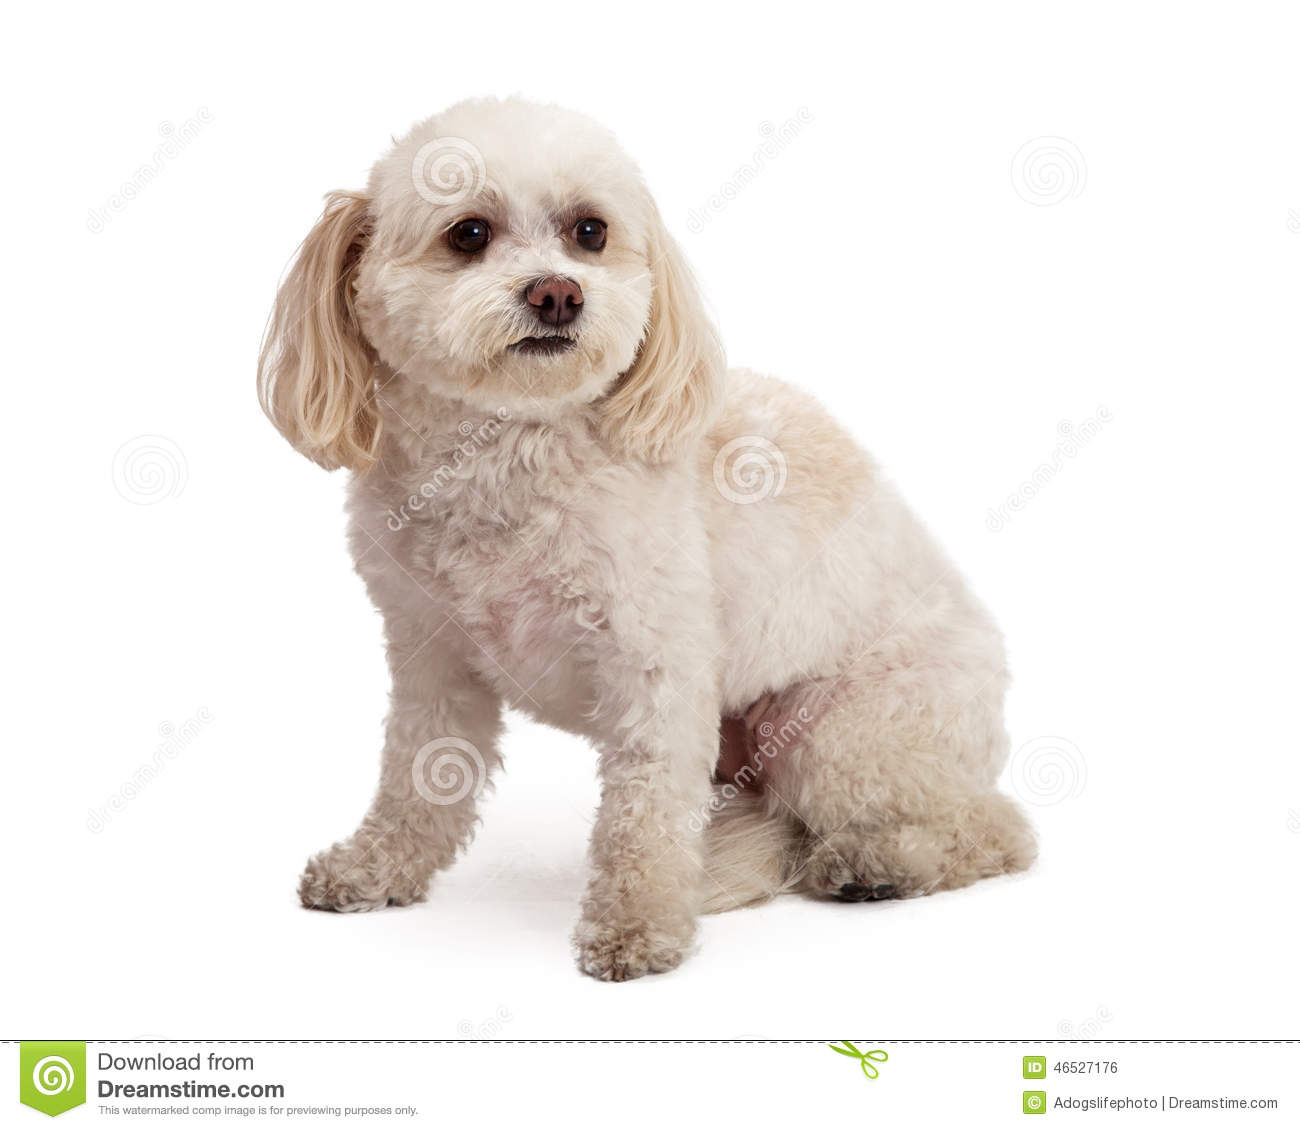 Attentive Maltese And Poodle Mix Breed Dog Sitting